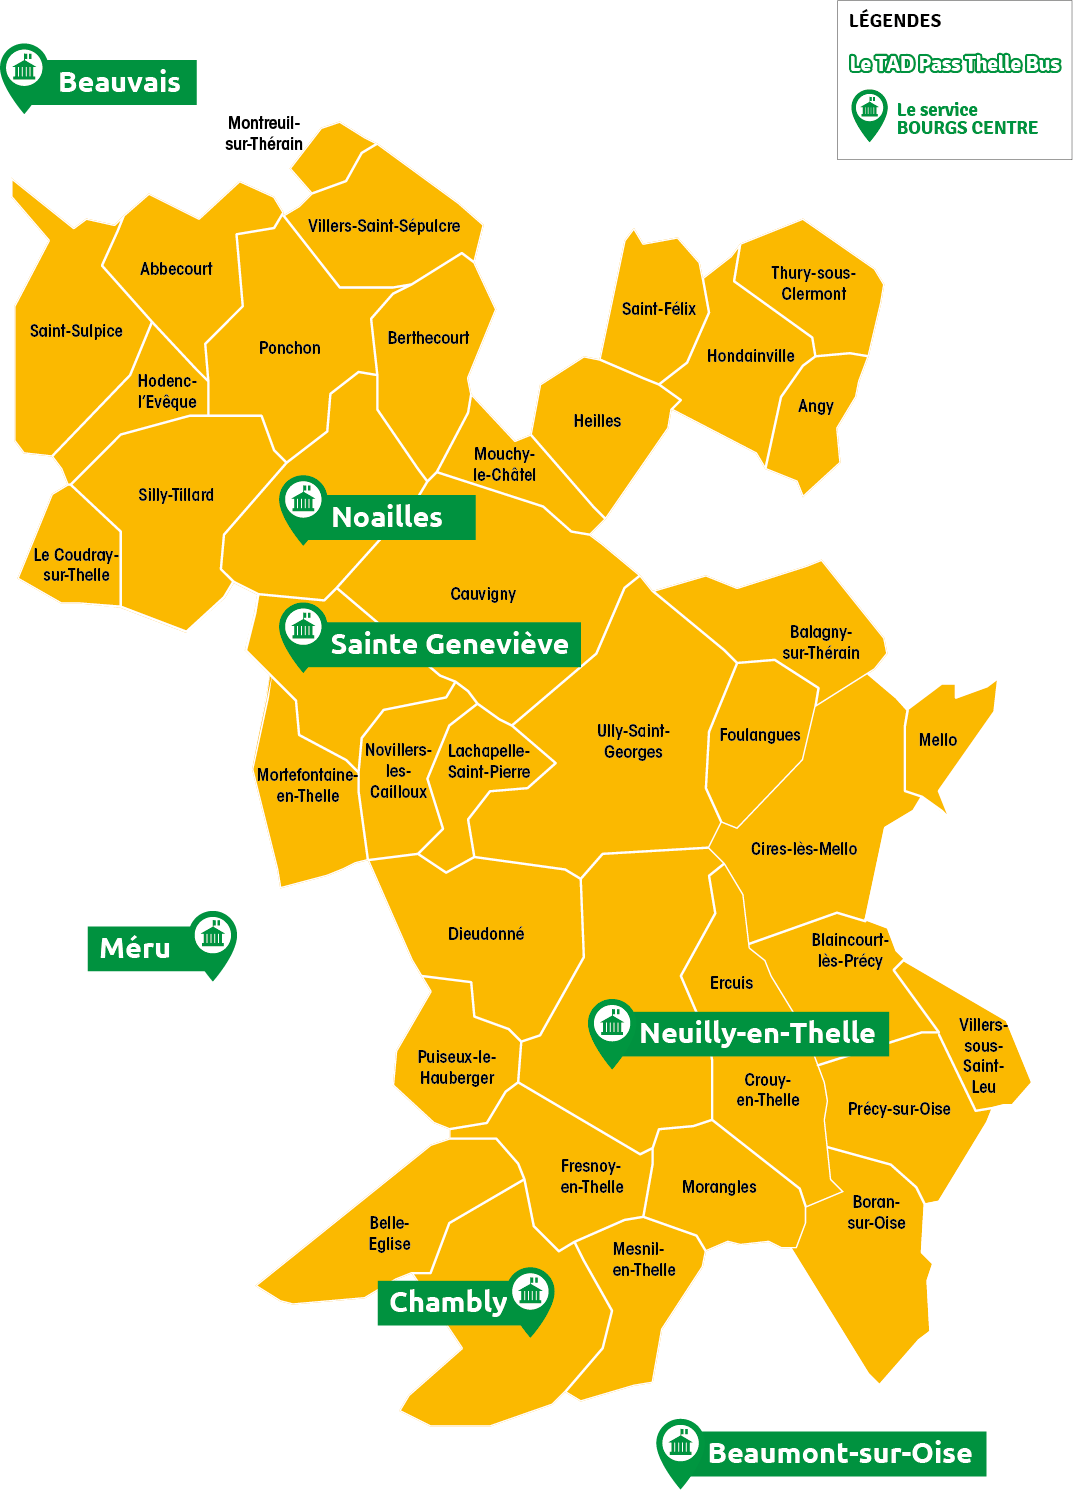 carte-pass-thelle-bus-2019-services-centres-bourgs-vert-v2.png